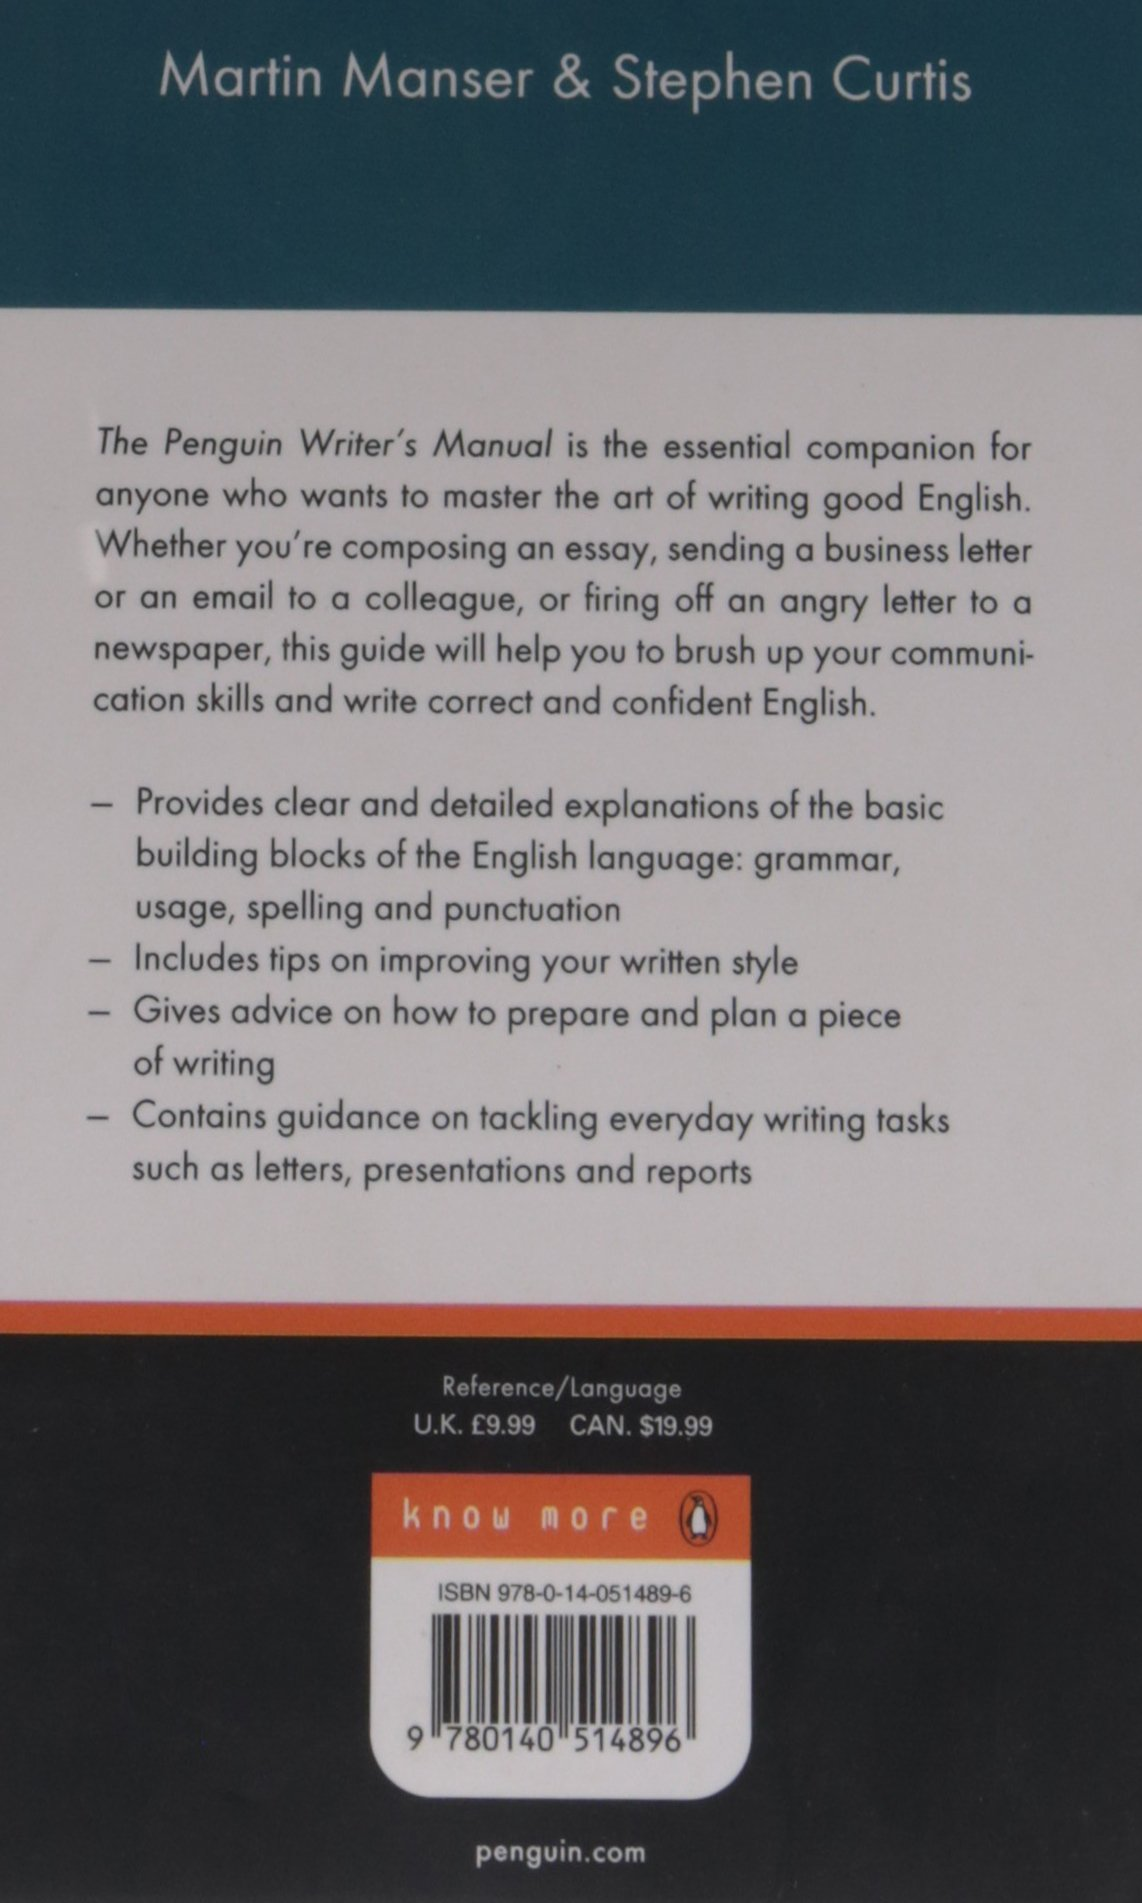 penguin writers manual penguin reference books martin manser  penguin writers manual penguin reference books martin manser stephen curtis 8601300103471 com books